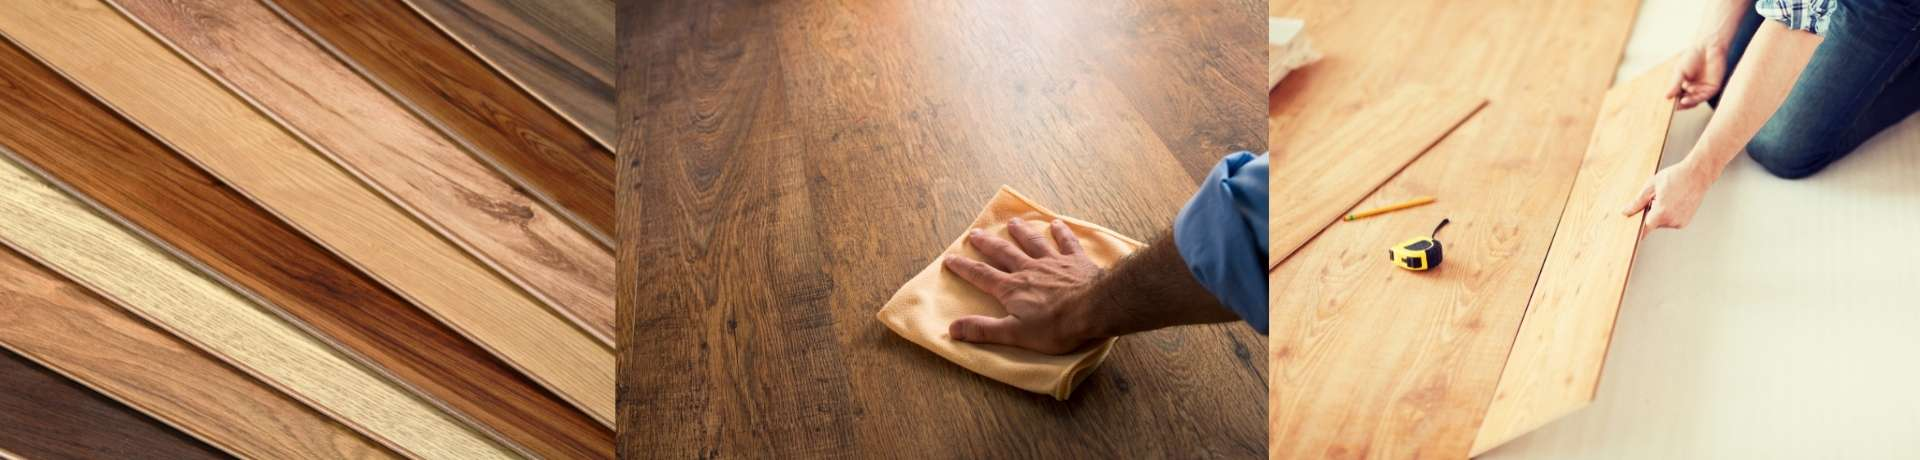 Flooring decision doesn't need to be complicated